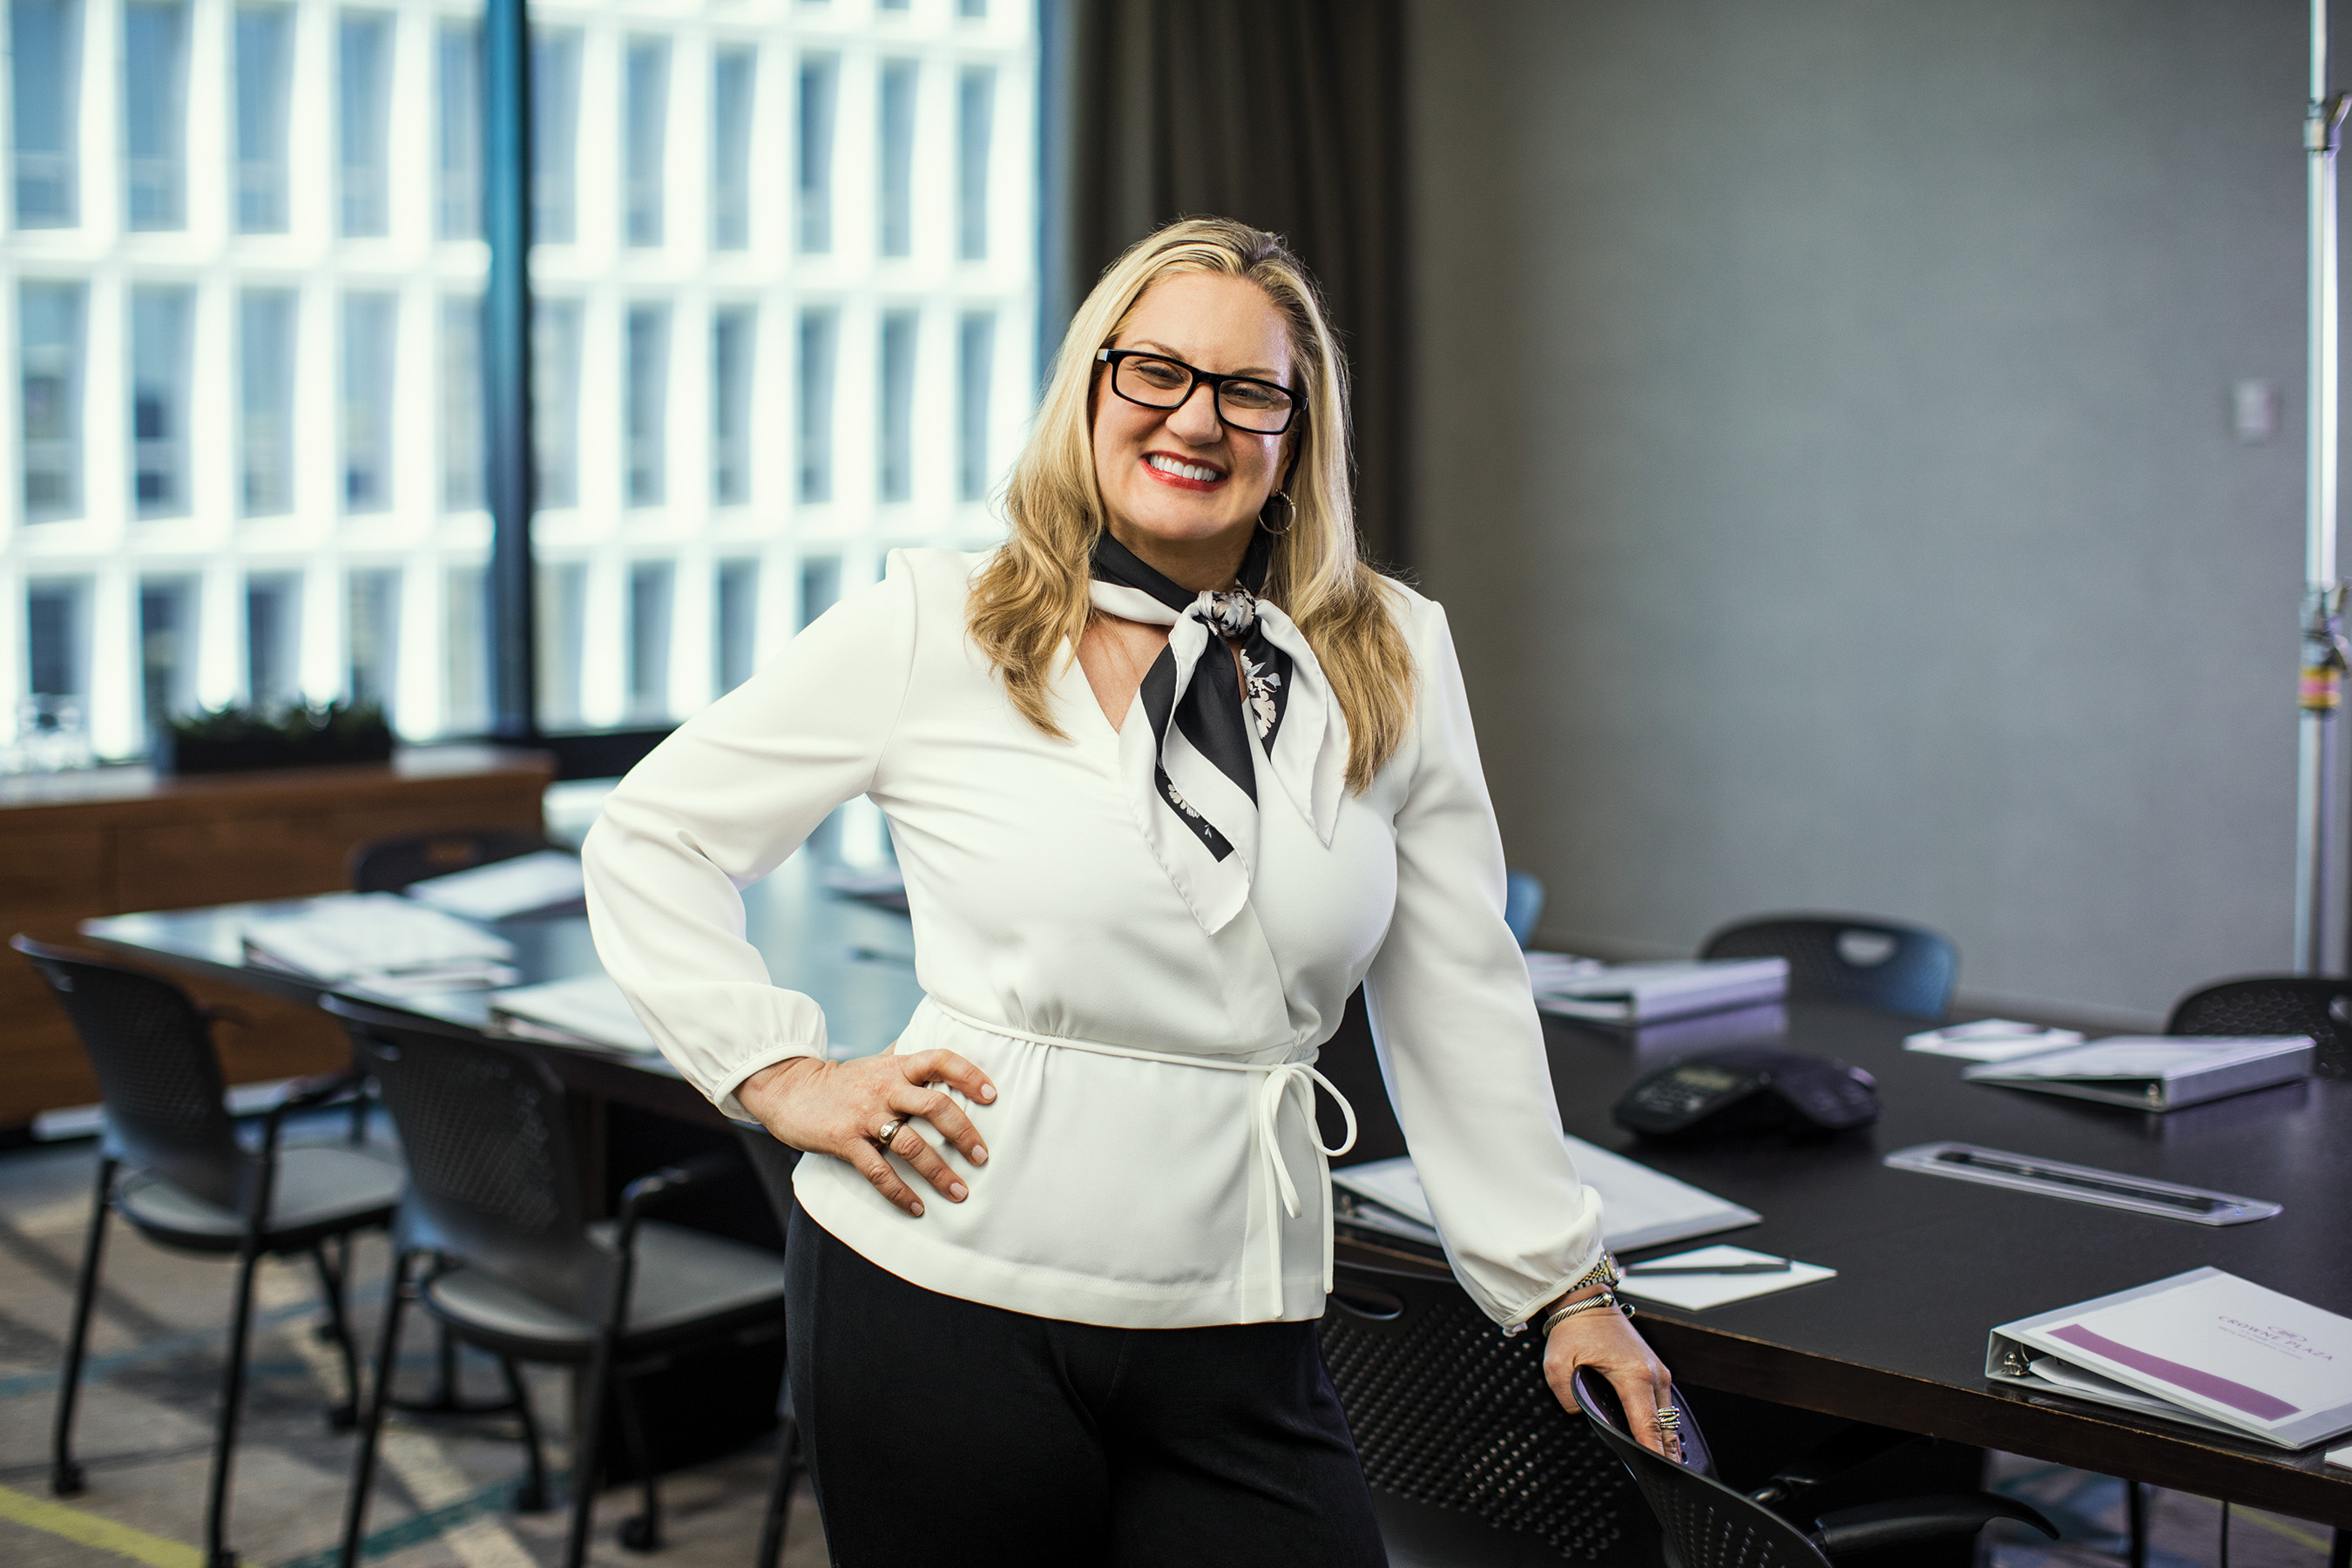 Christy Lamagna, Master Event Strategist: As a strategic meeting planning expert, Christy Lamagna brings more than 26 years of industry experience to her latest role with Crowne Plaza. Lamagna is the founder of Strategic Meetings & Events.